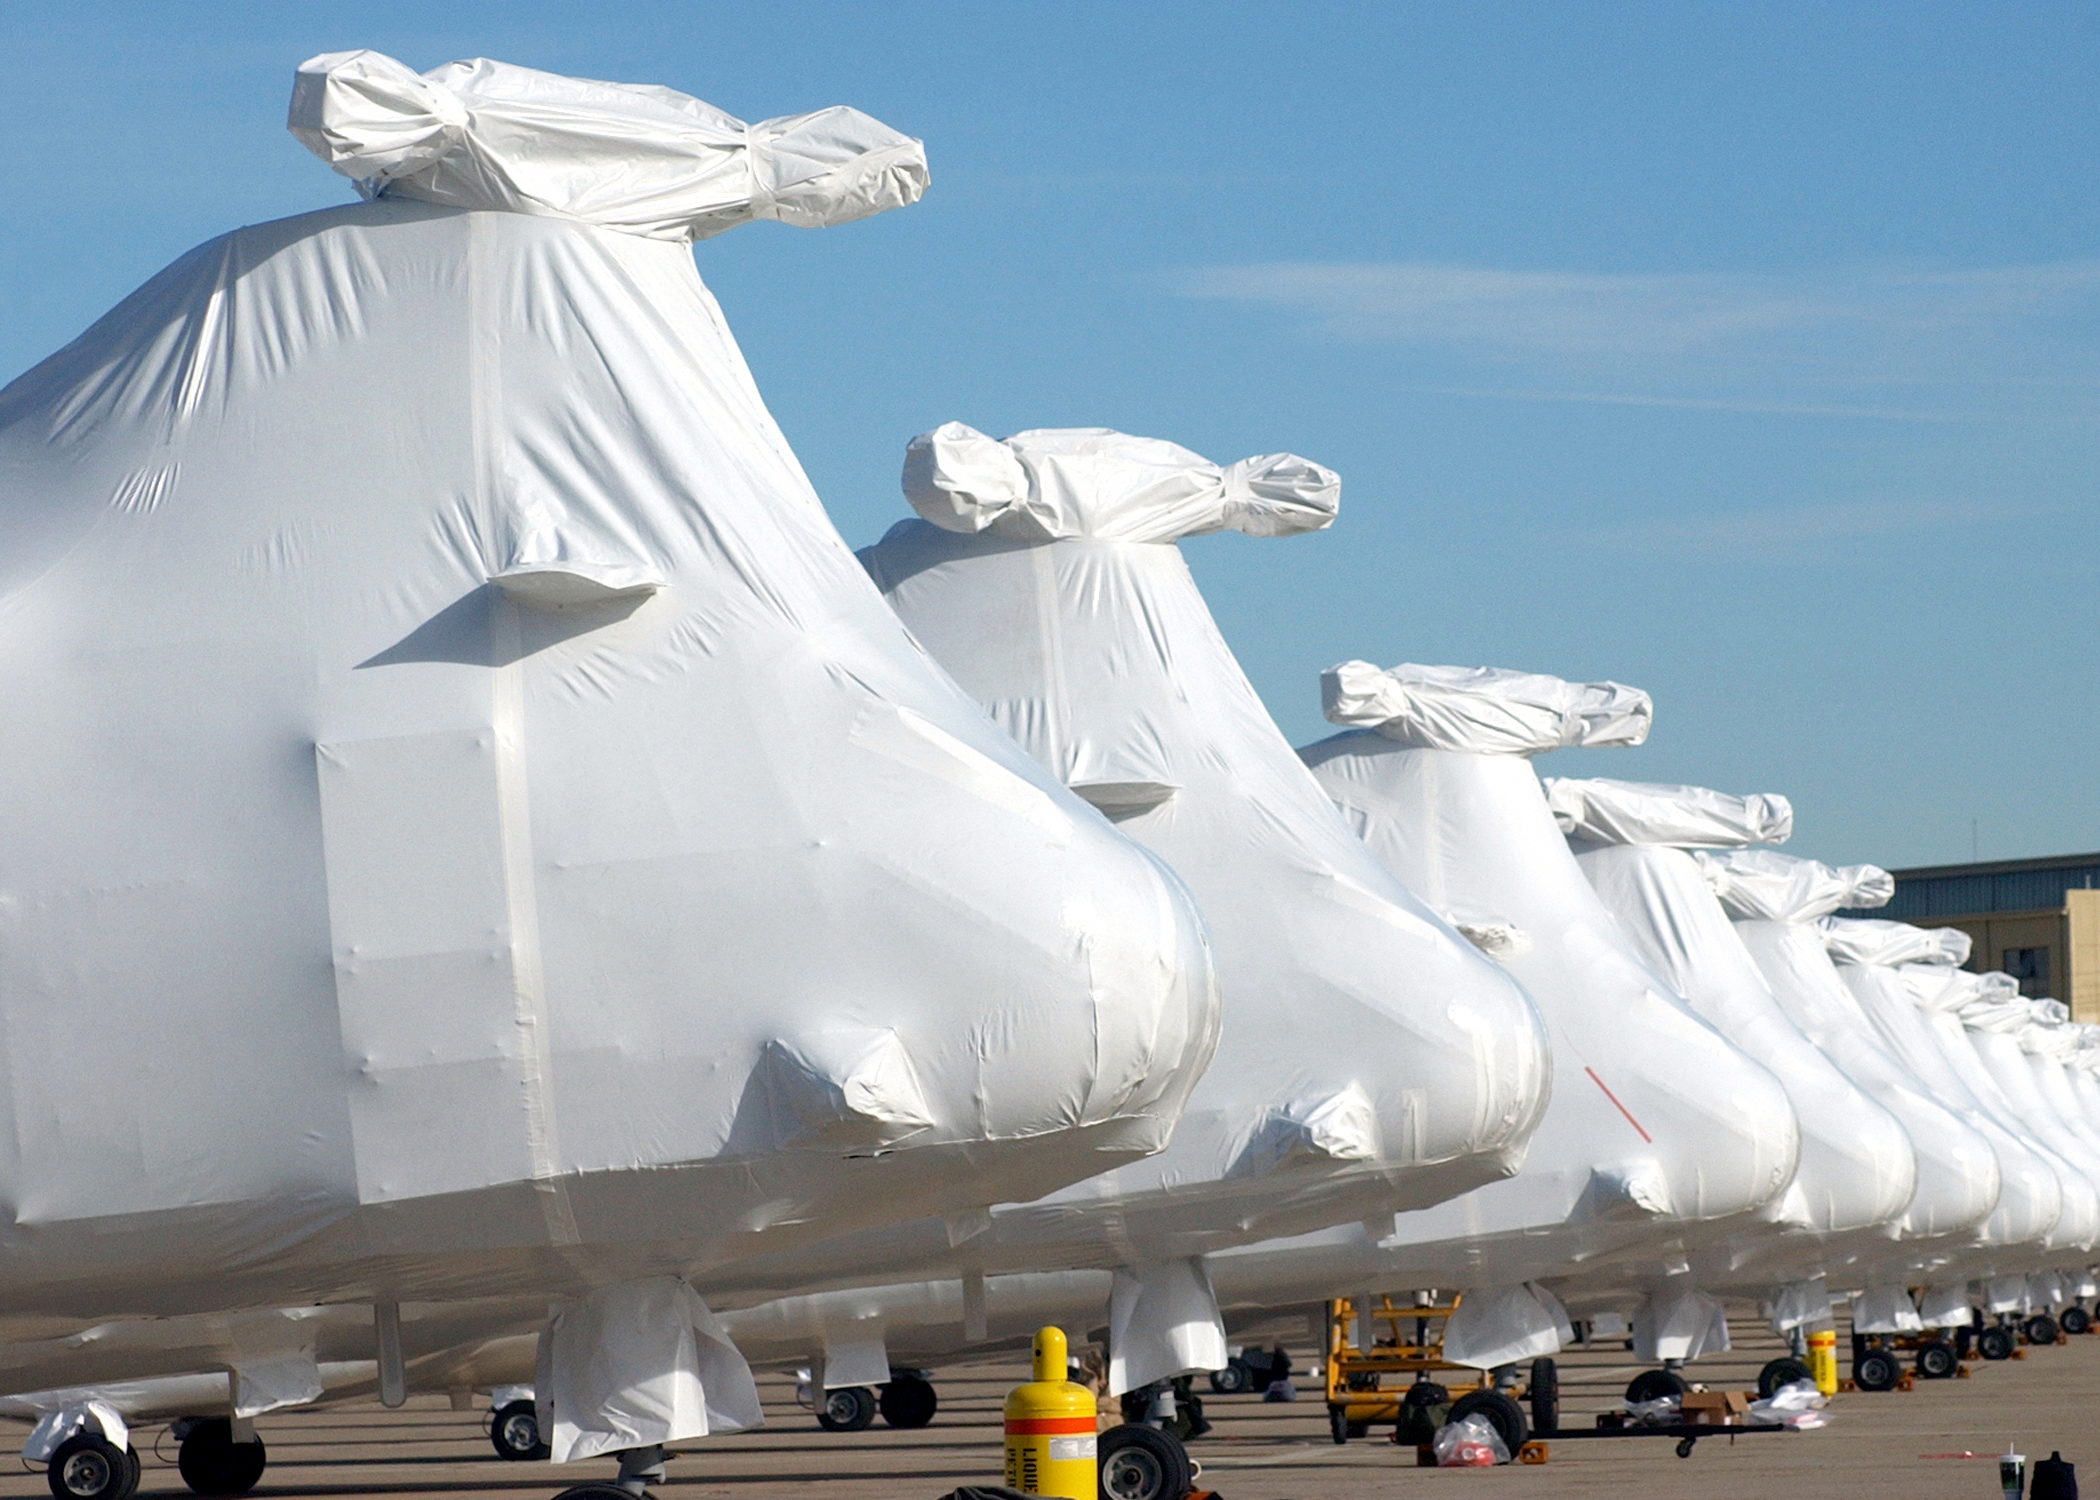 Shrink wrapped helicopters